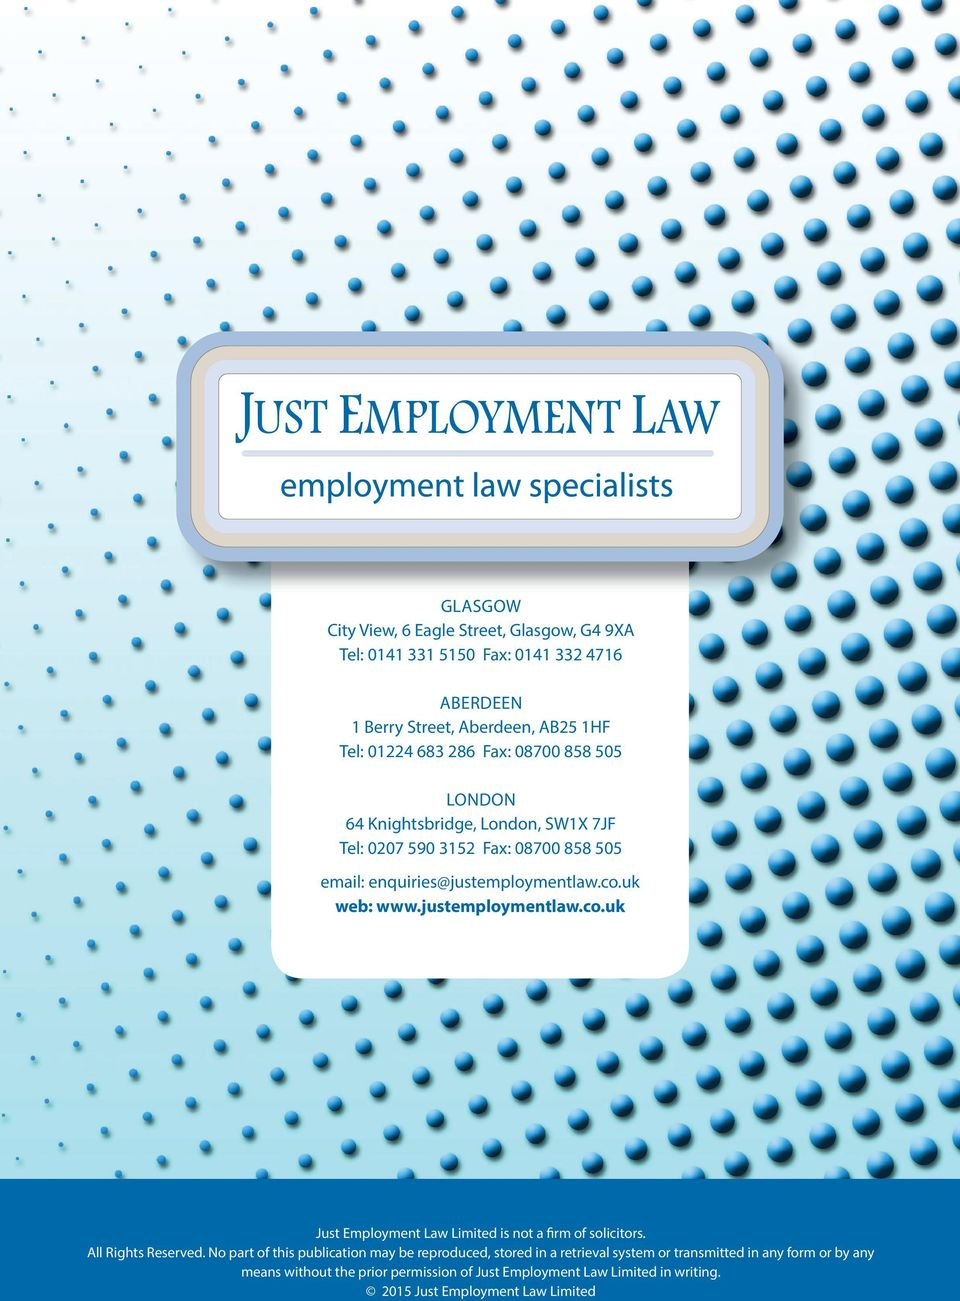 justemploymentlaw.co.uk Just Employment Law Limited is not a firm of solicitors. All Rights Reserved.